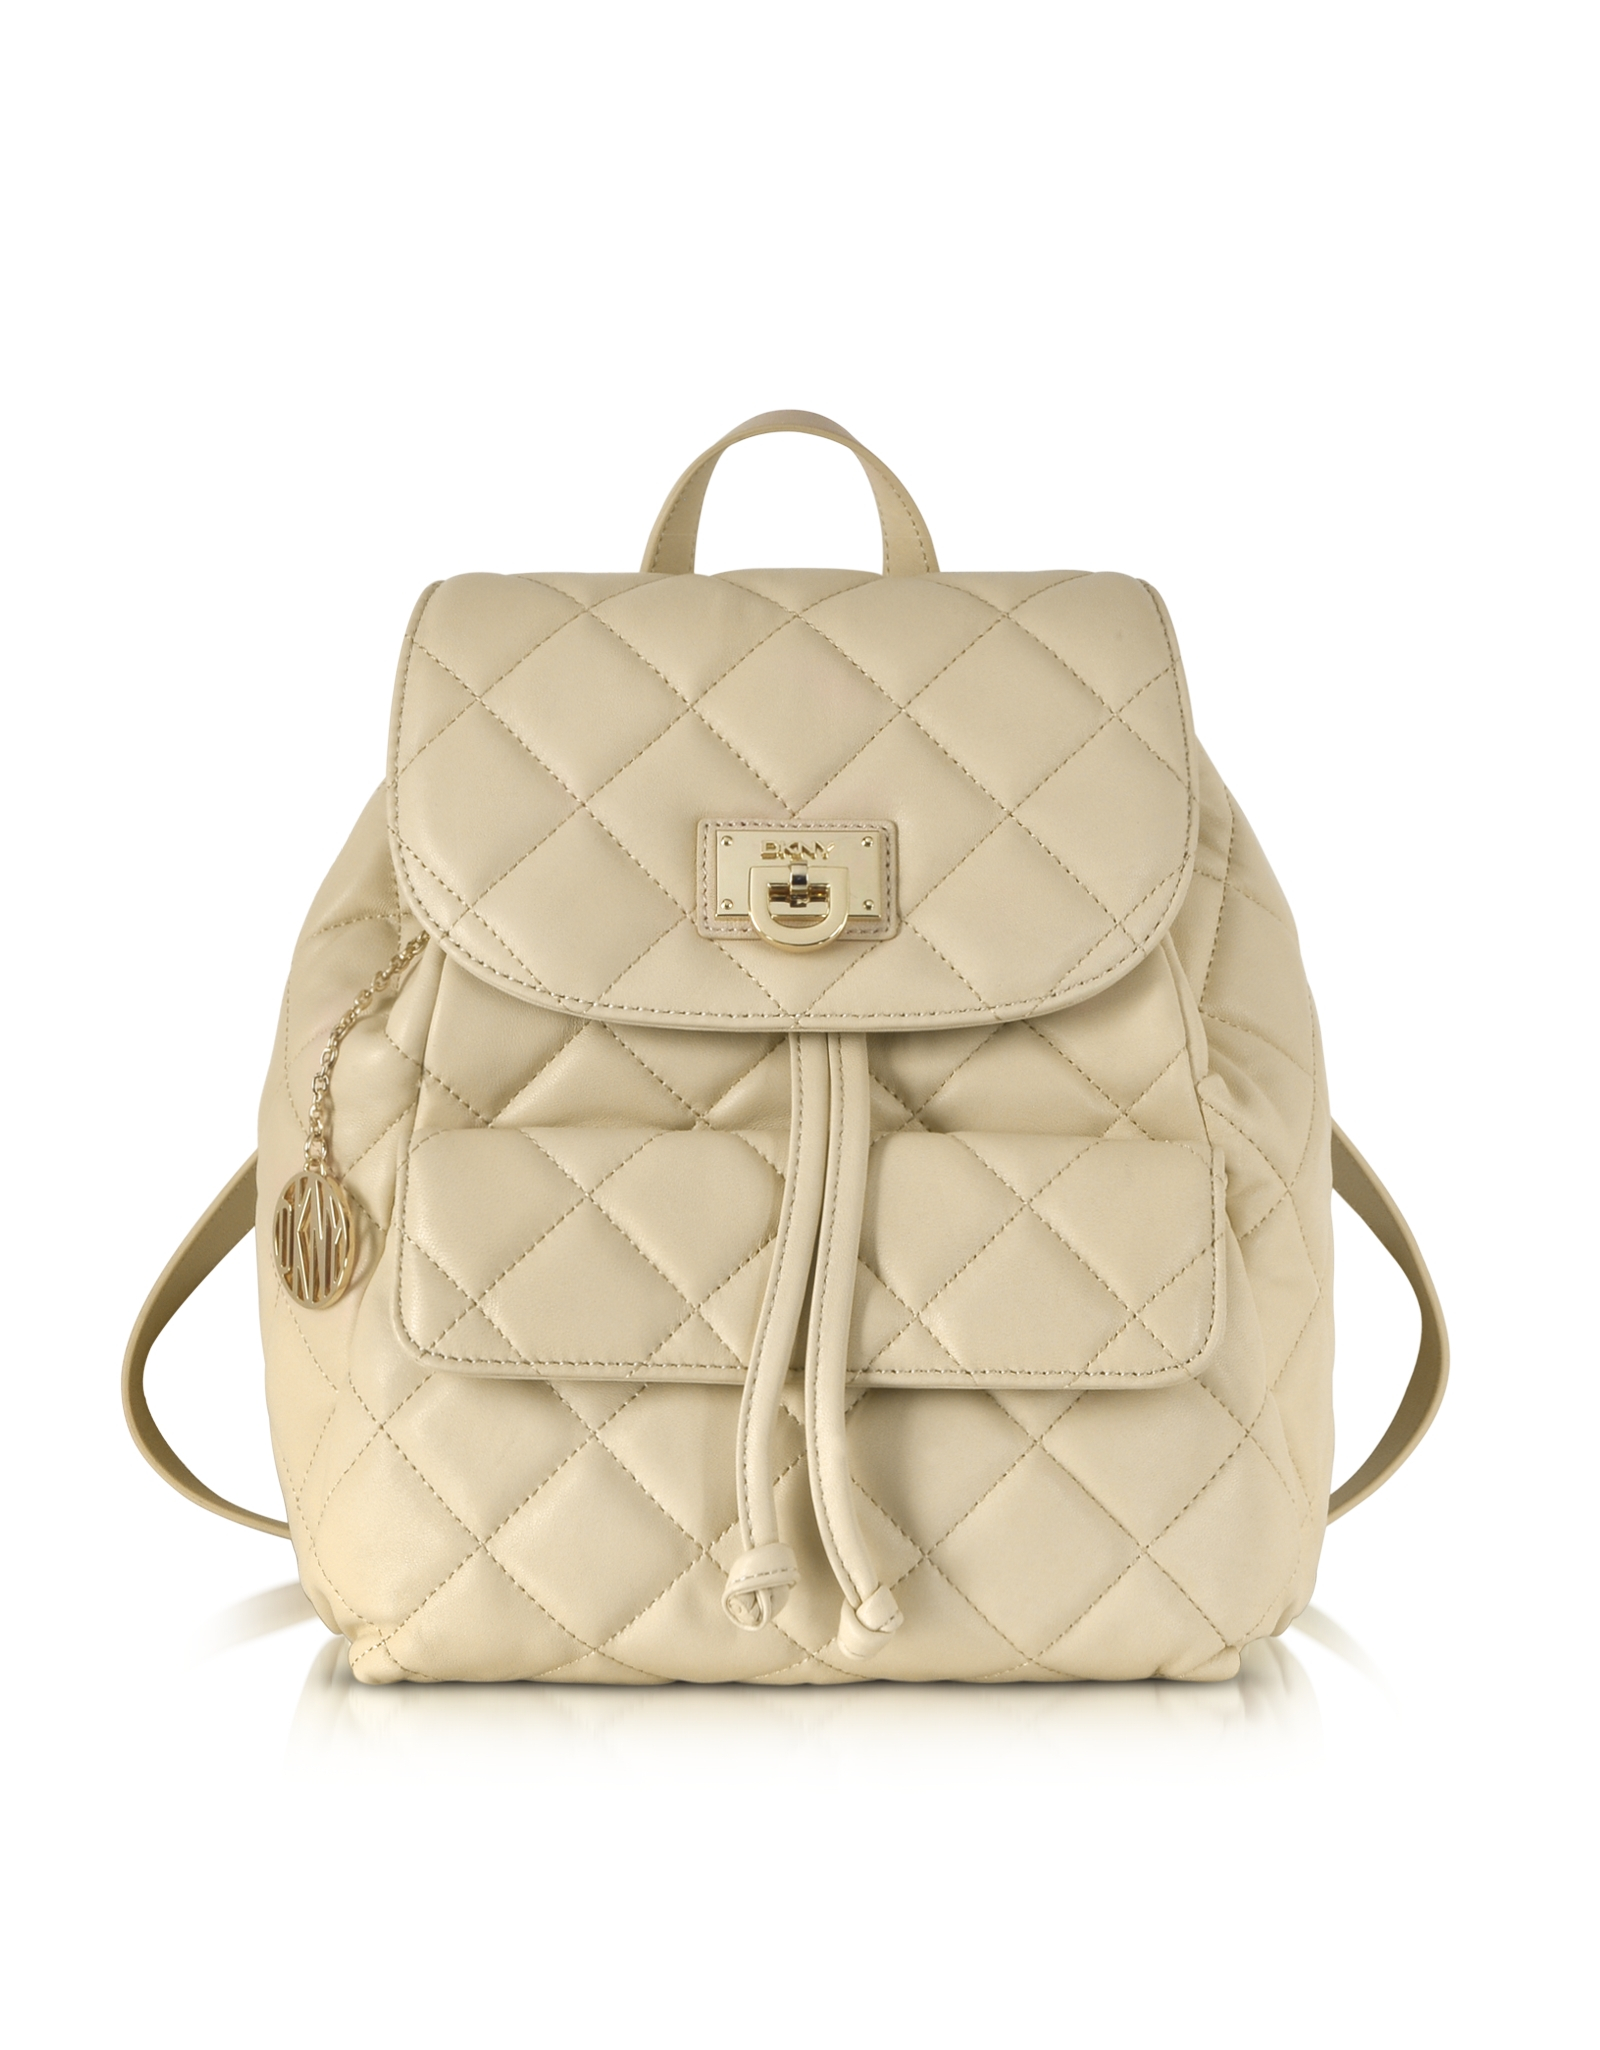 Lyst - Dkny Gansevoort Quilted Nappa Leather Backpack in Natural : dkny quilted rucksack - Adamdwight.com